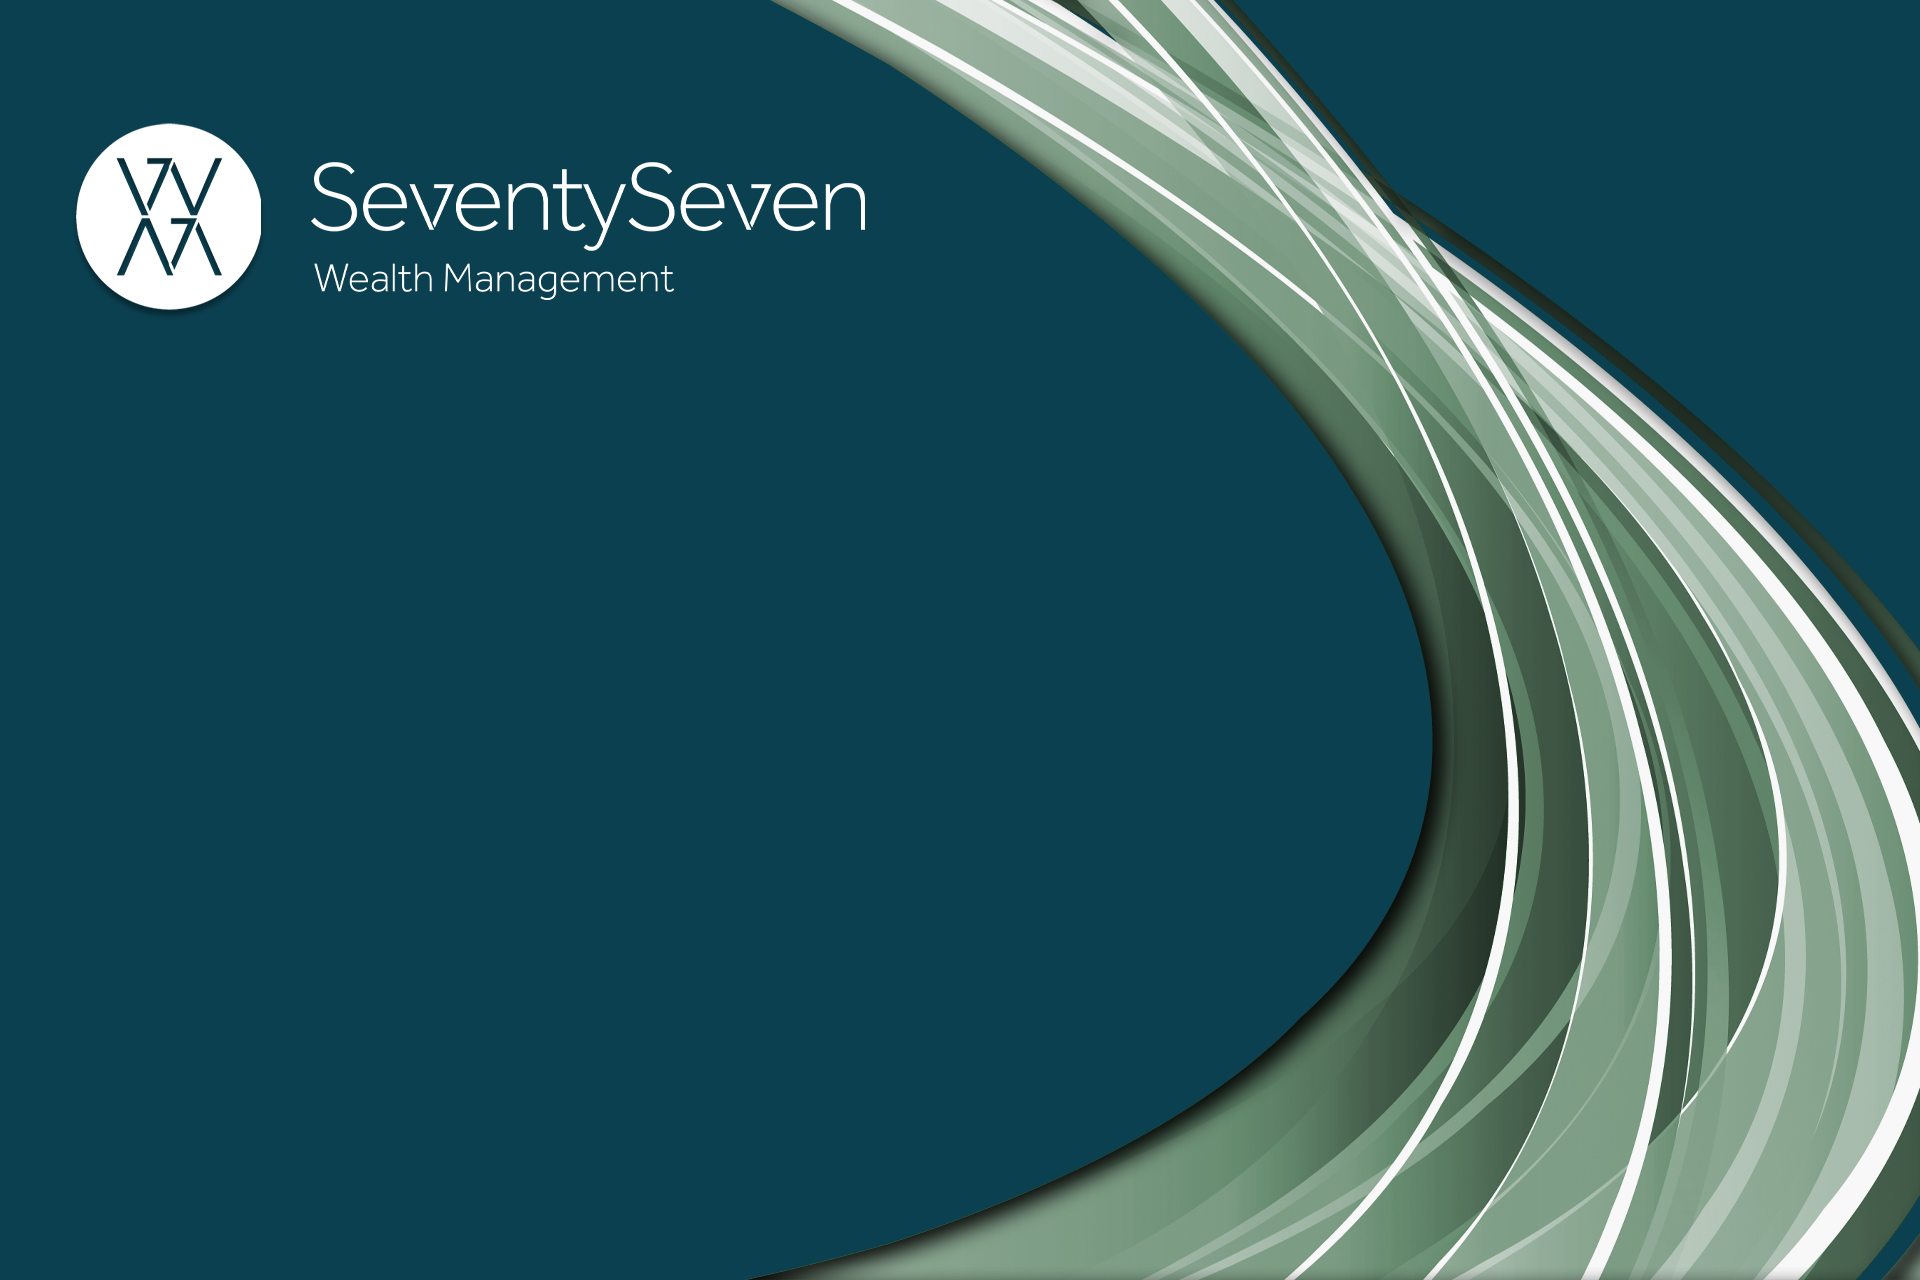 SeventySeven Wealth Management